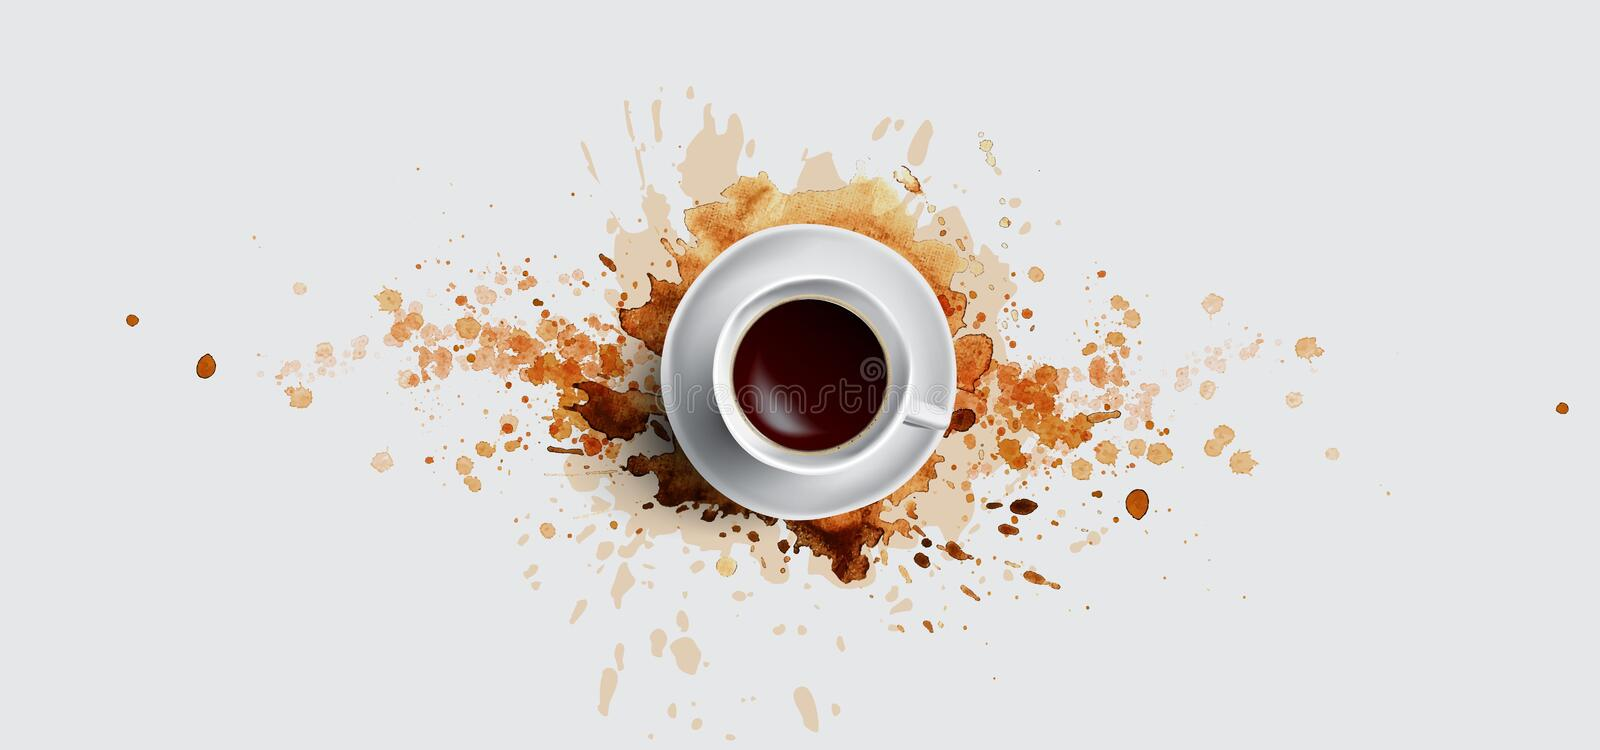 Coffee concept on white background - white coffee cup, top view with watercolor coffee splashes. Hand draw and vector illustration